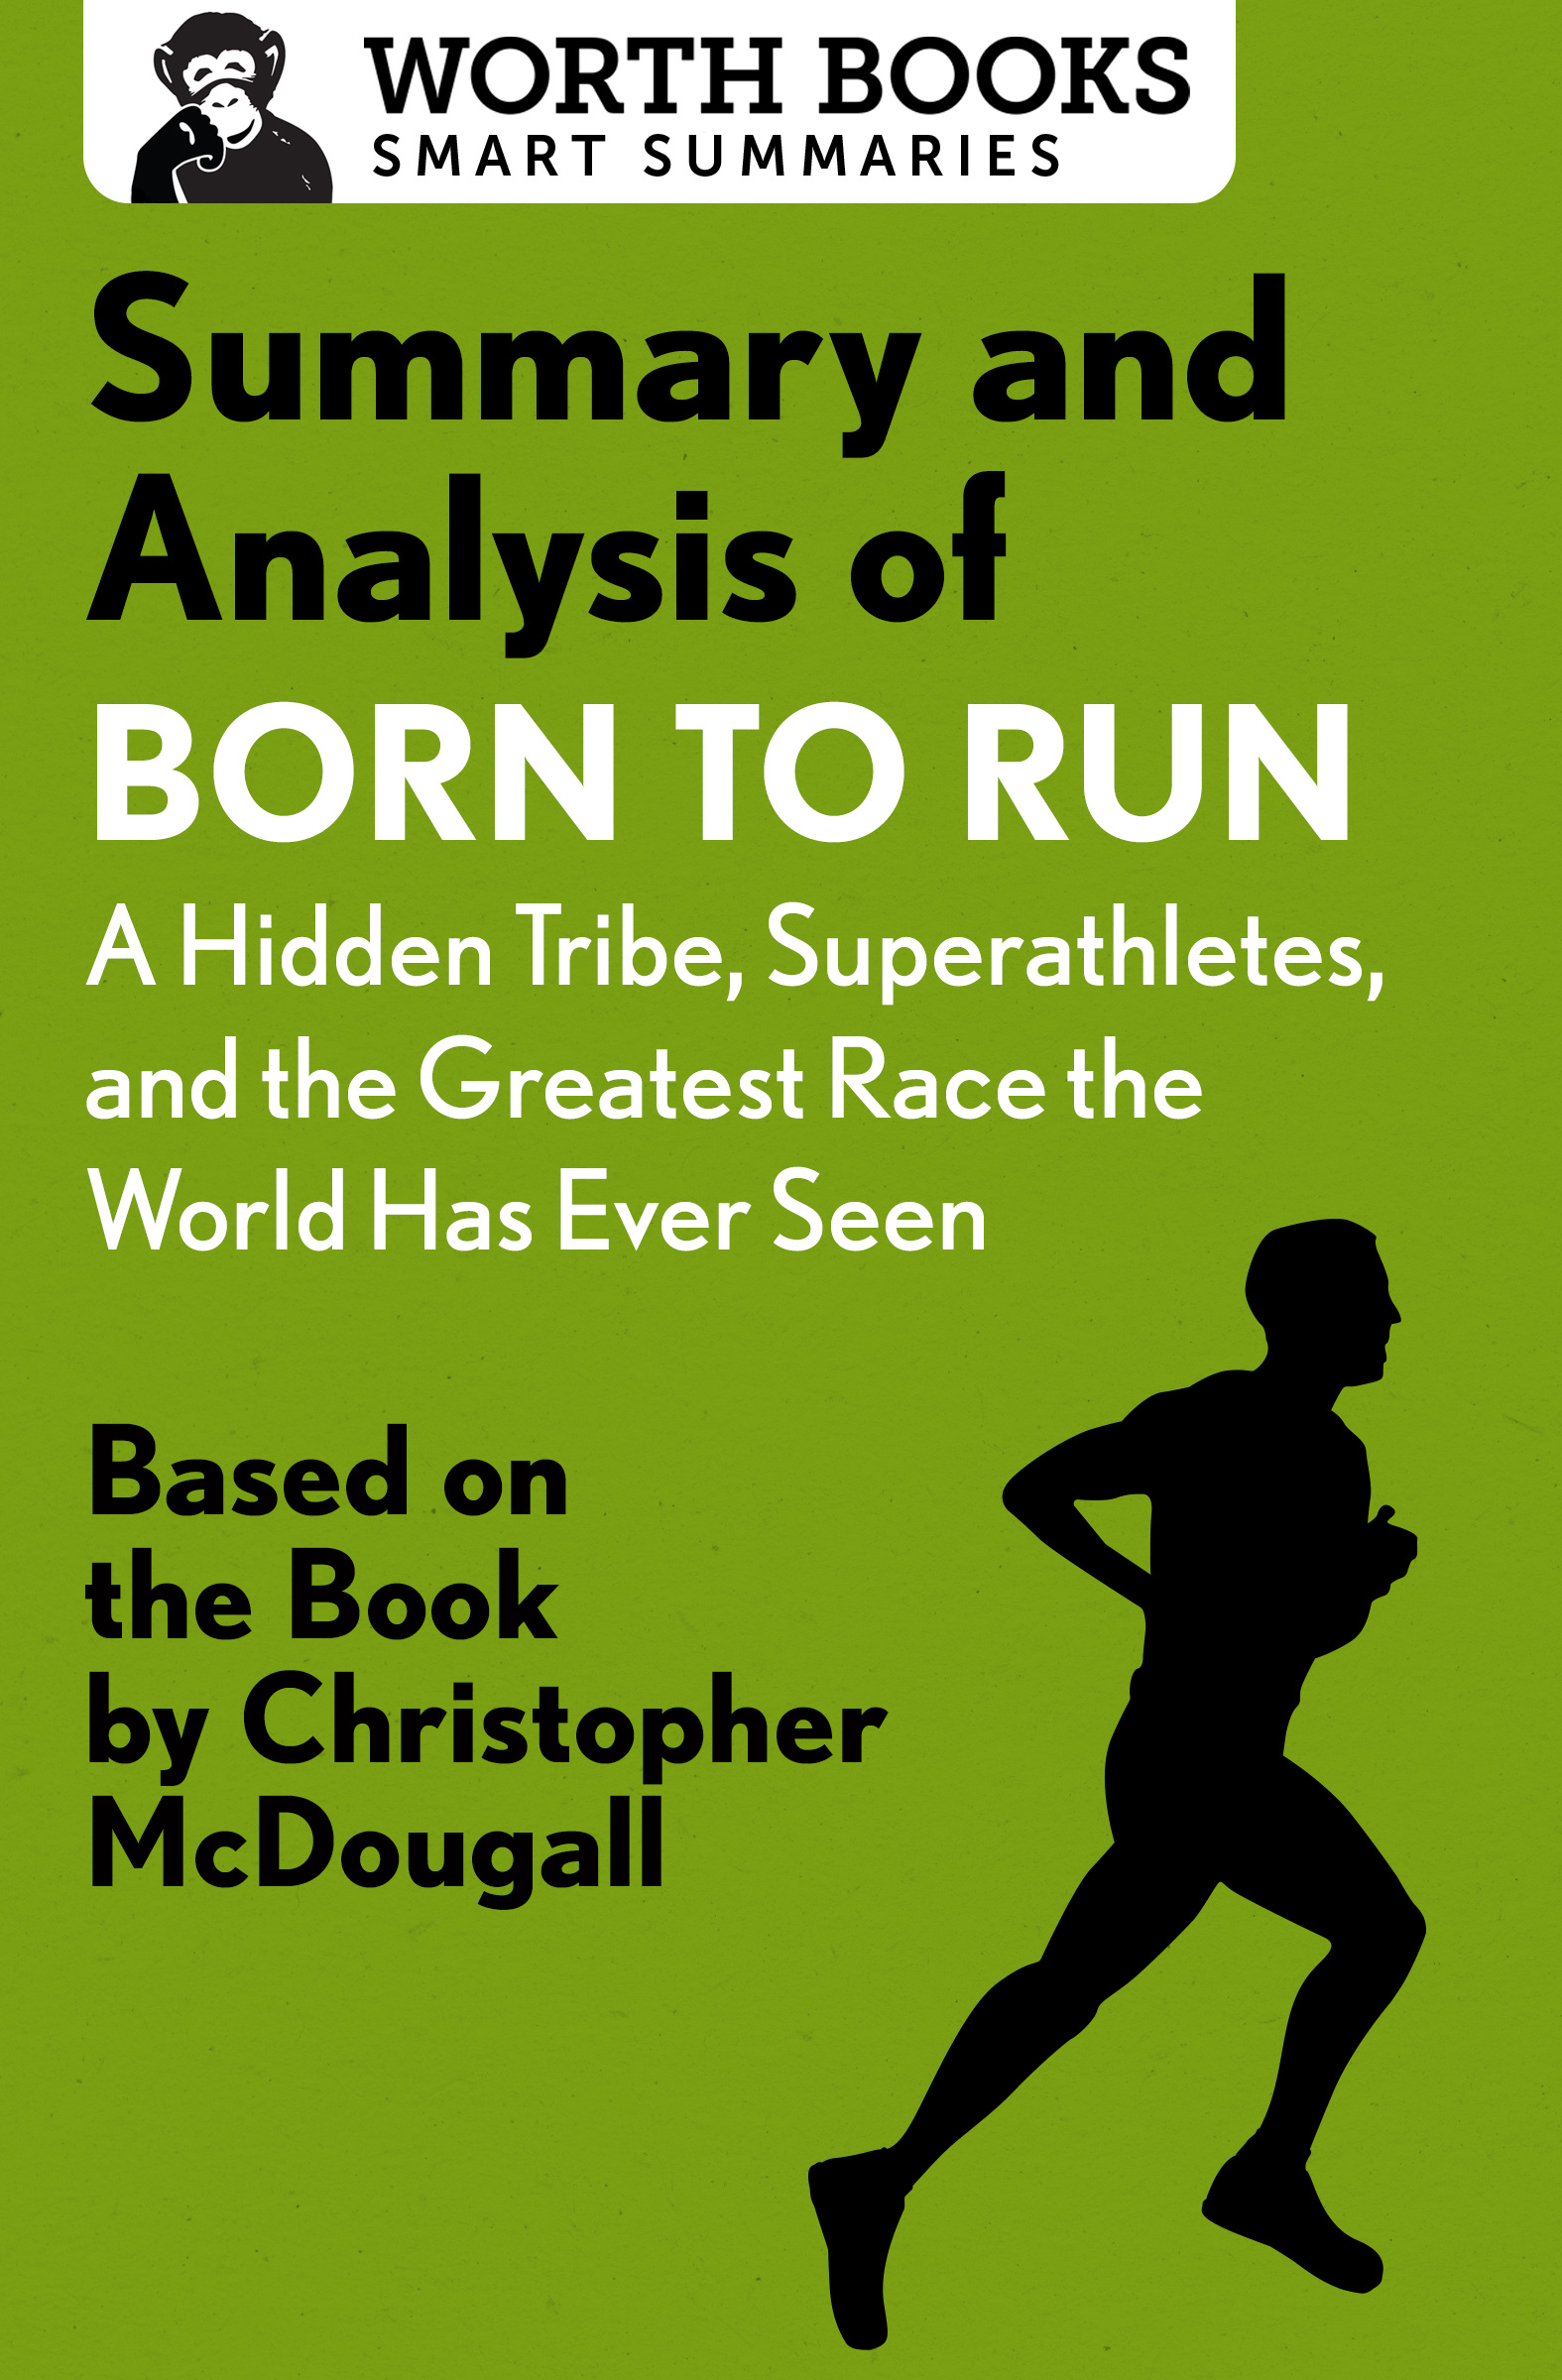 Summary and Analysis of Born to Run: A Hidden Tribe, Superathletes, and the Greatest Race the World Has Never Seen: Based on the Book by Christopher McDougall